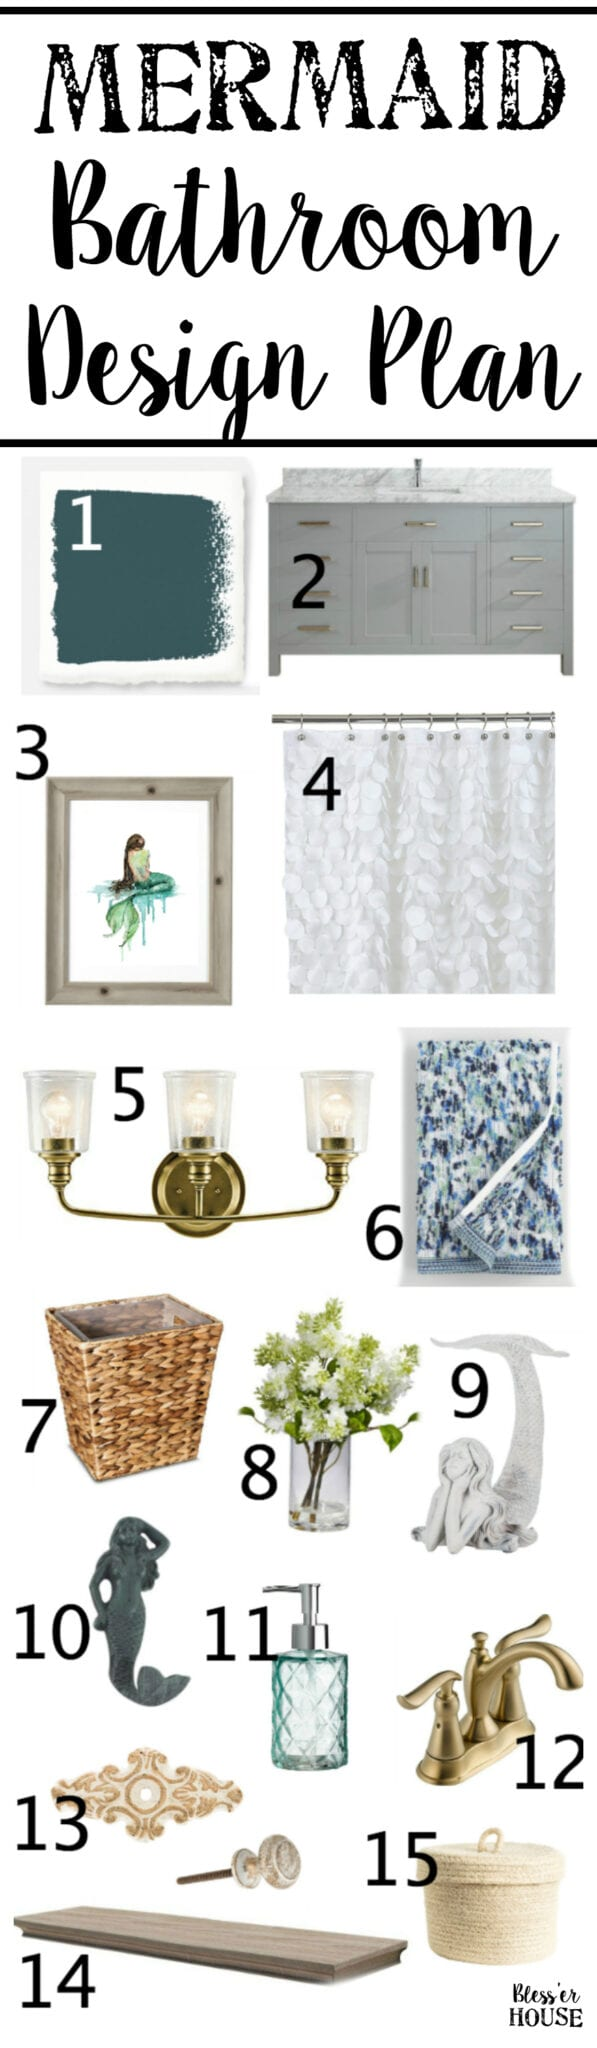 Mermaid Bathroom Design Plan | Blesserhouse.com   A Before Tour Of A Tired  Beige